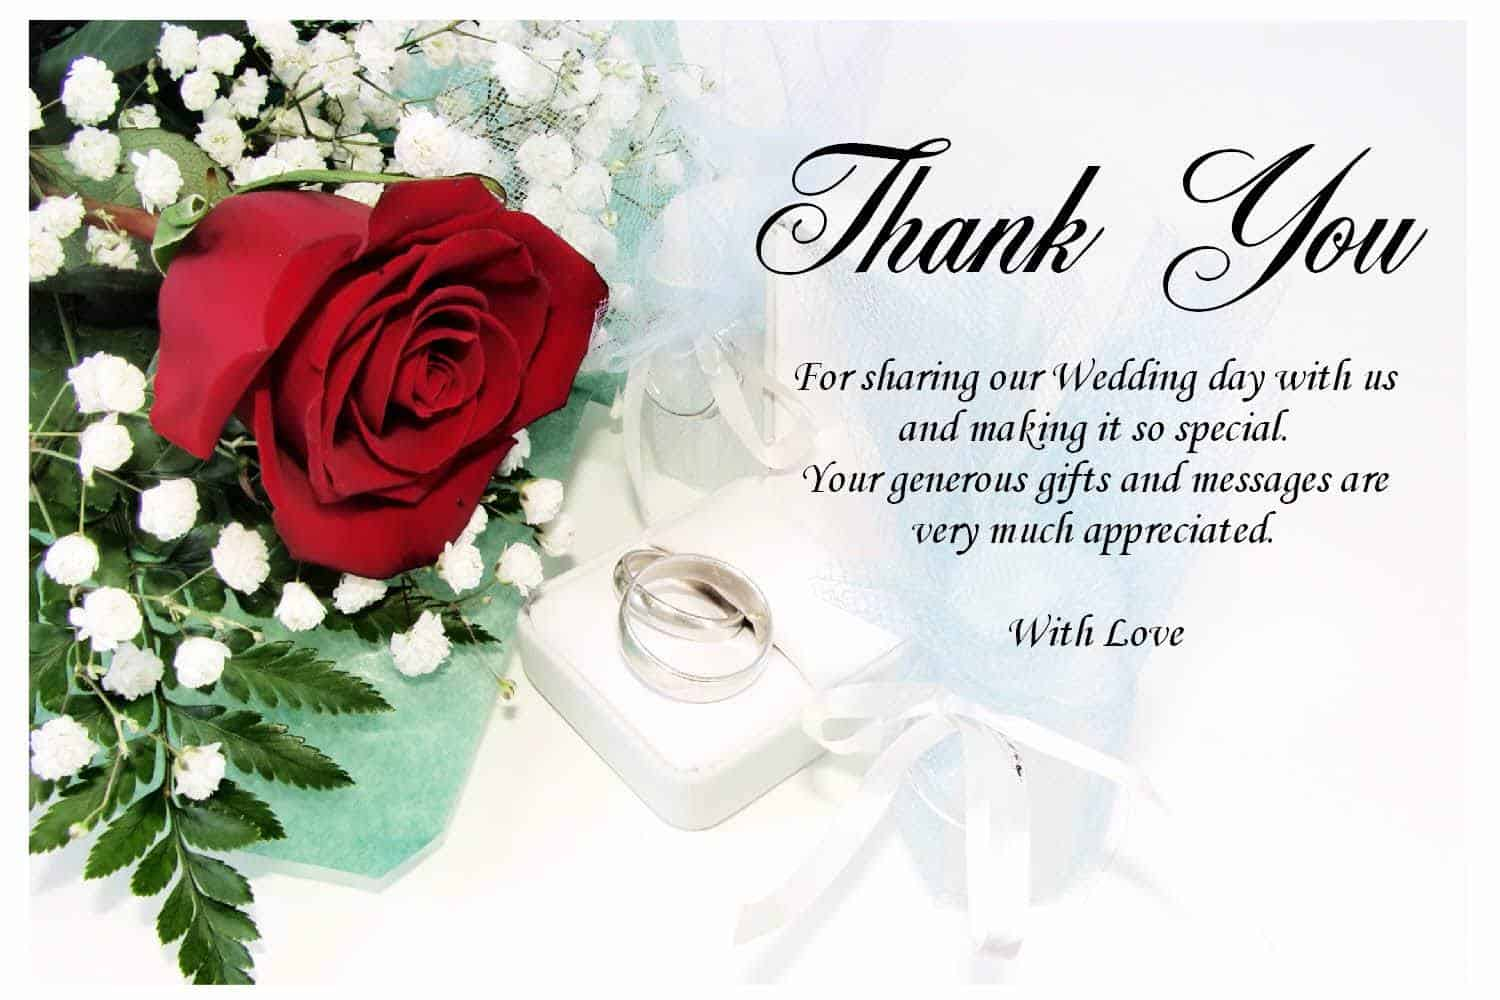 Wedding thank you gifts and messages izmirmasajfo